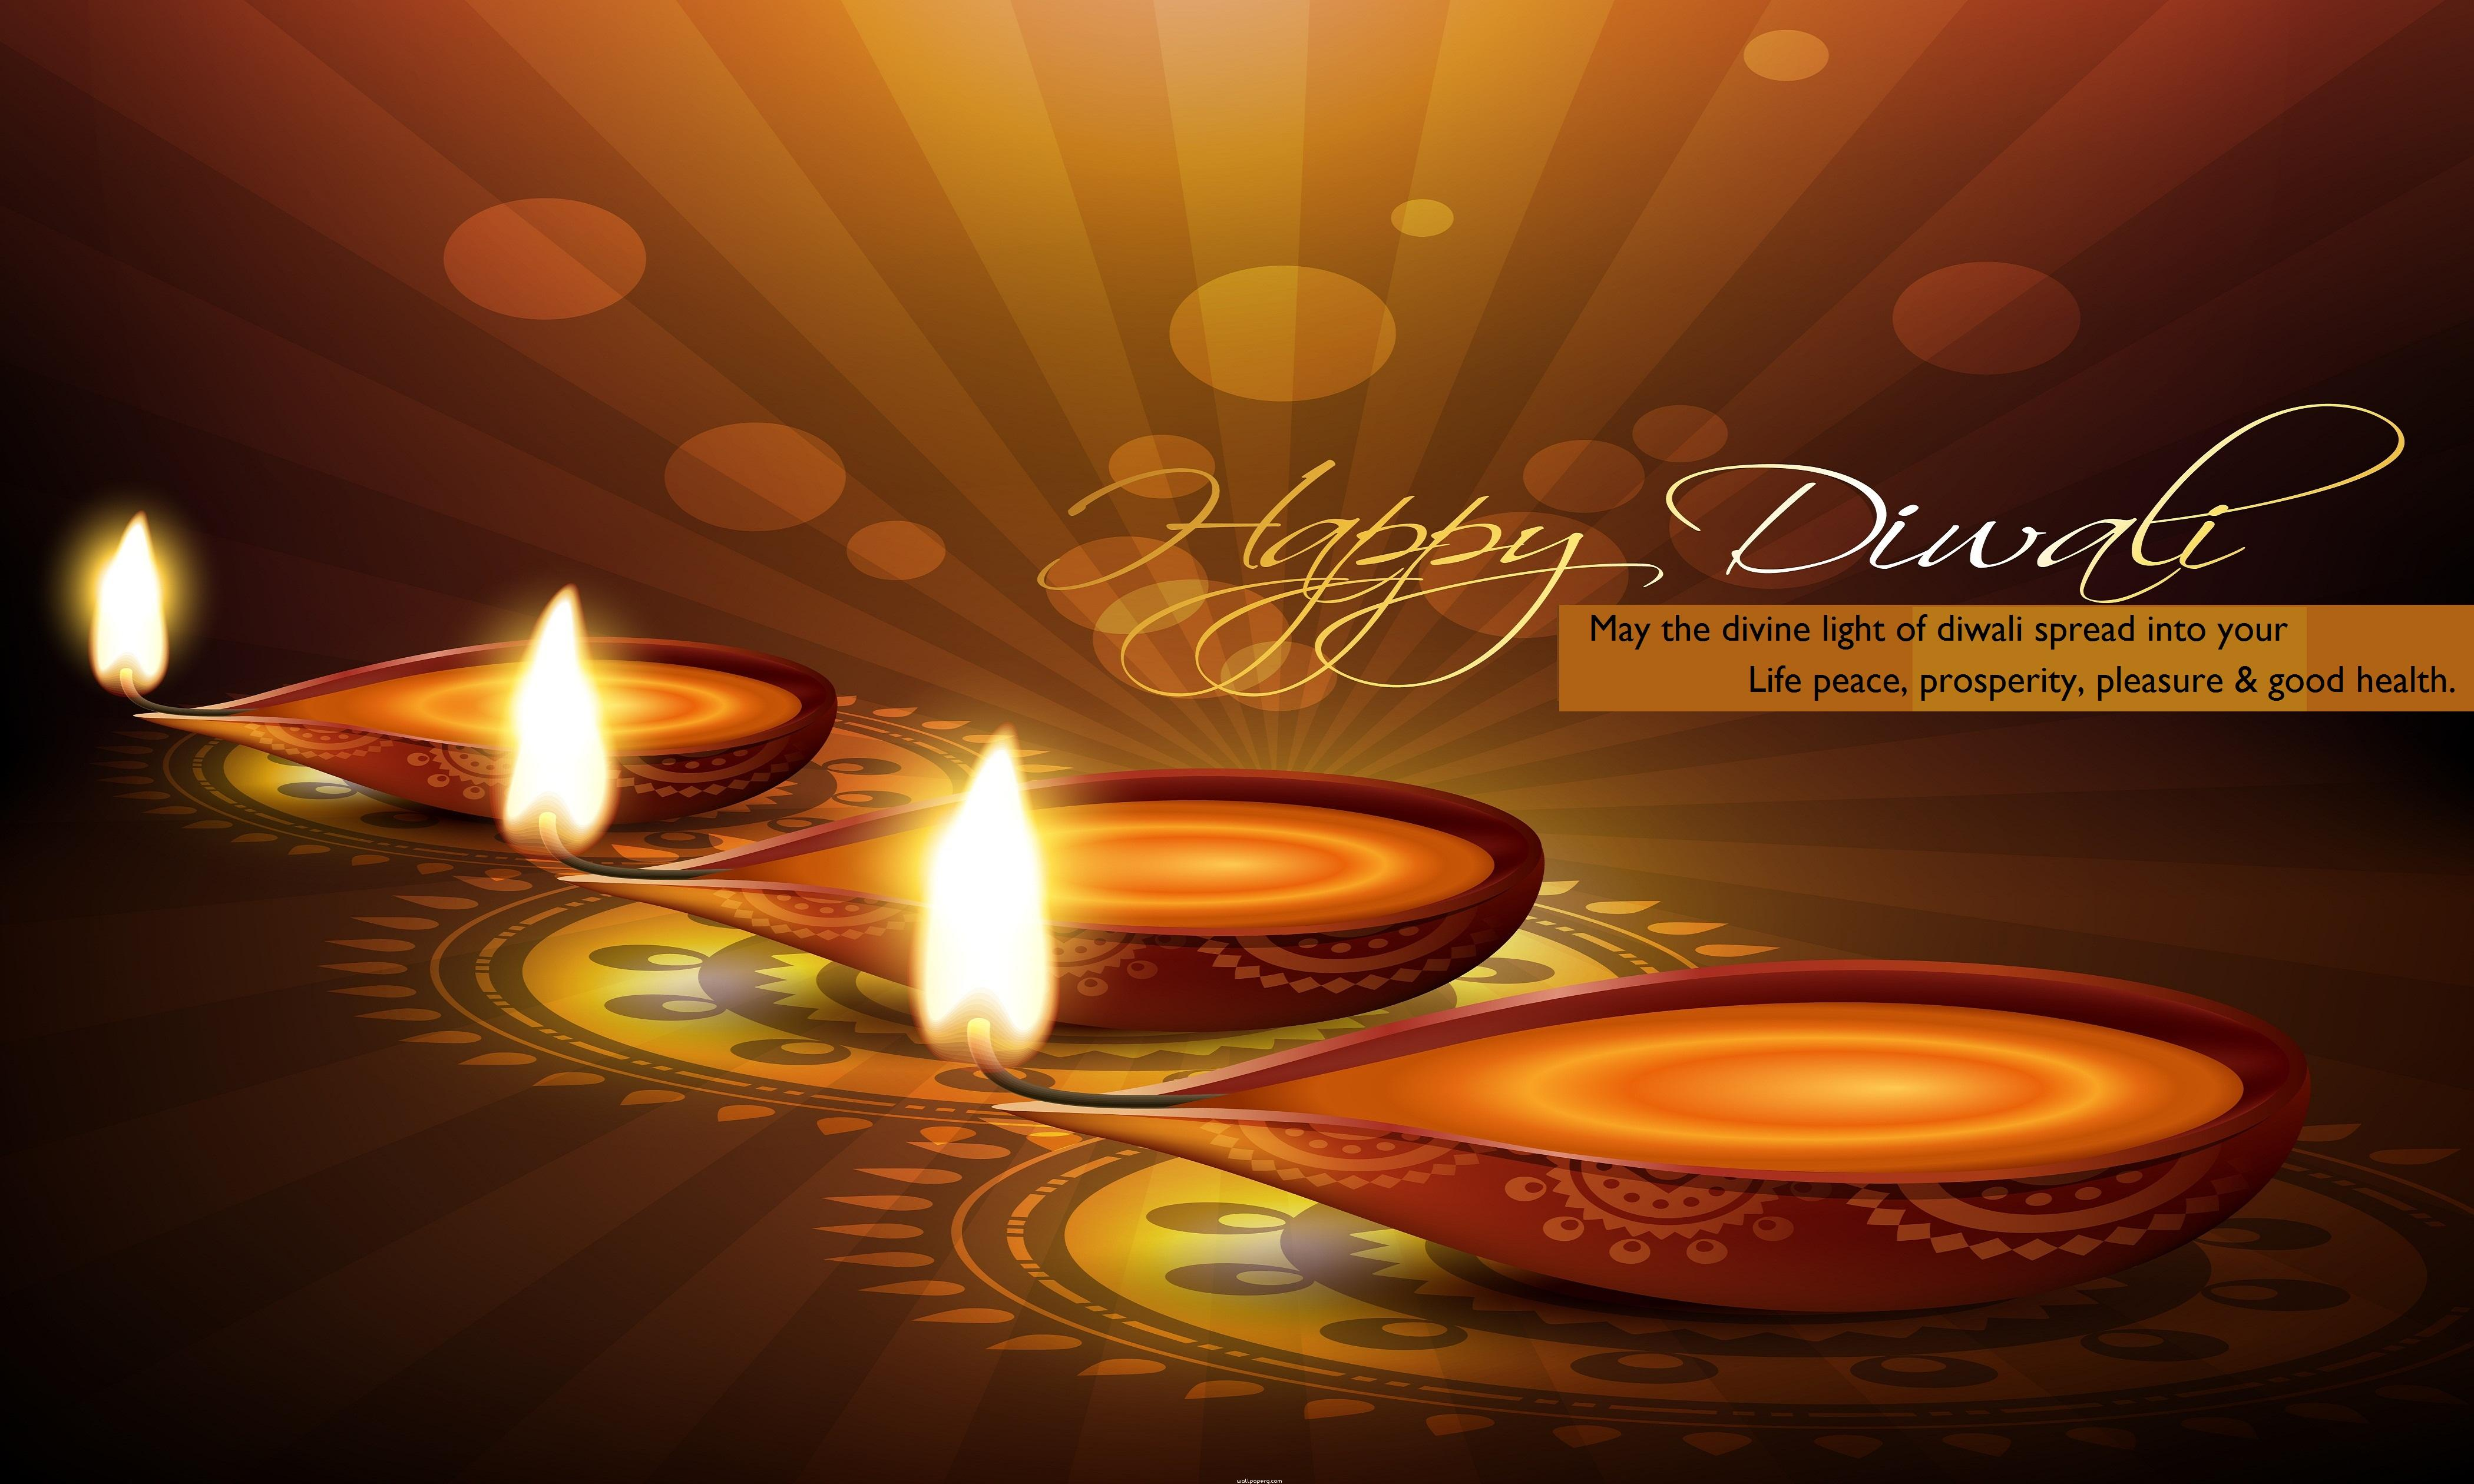 download diwali wishes - diwali wallpapers for your mobile cell phone